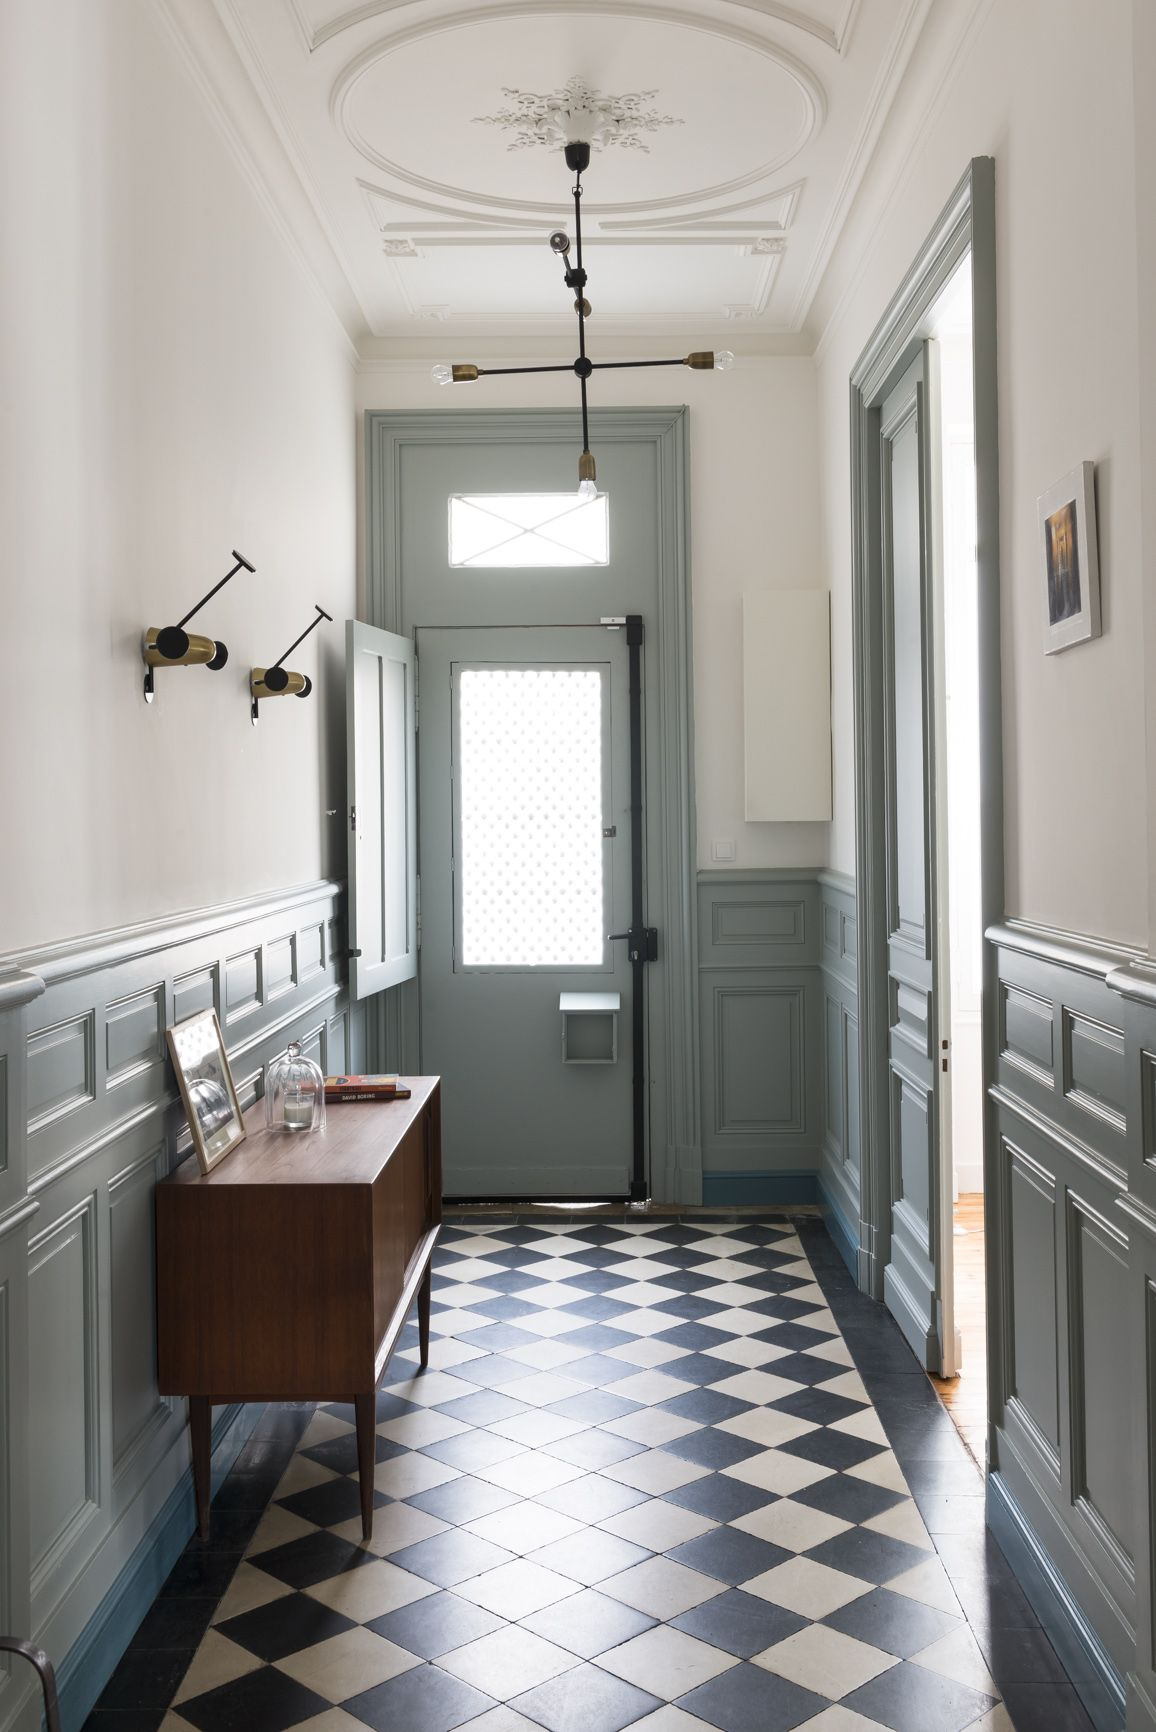 Best 25 maison bourgeoise ideas on pinterest boiseries for Decoration couloir maison